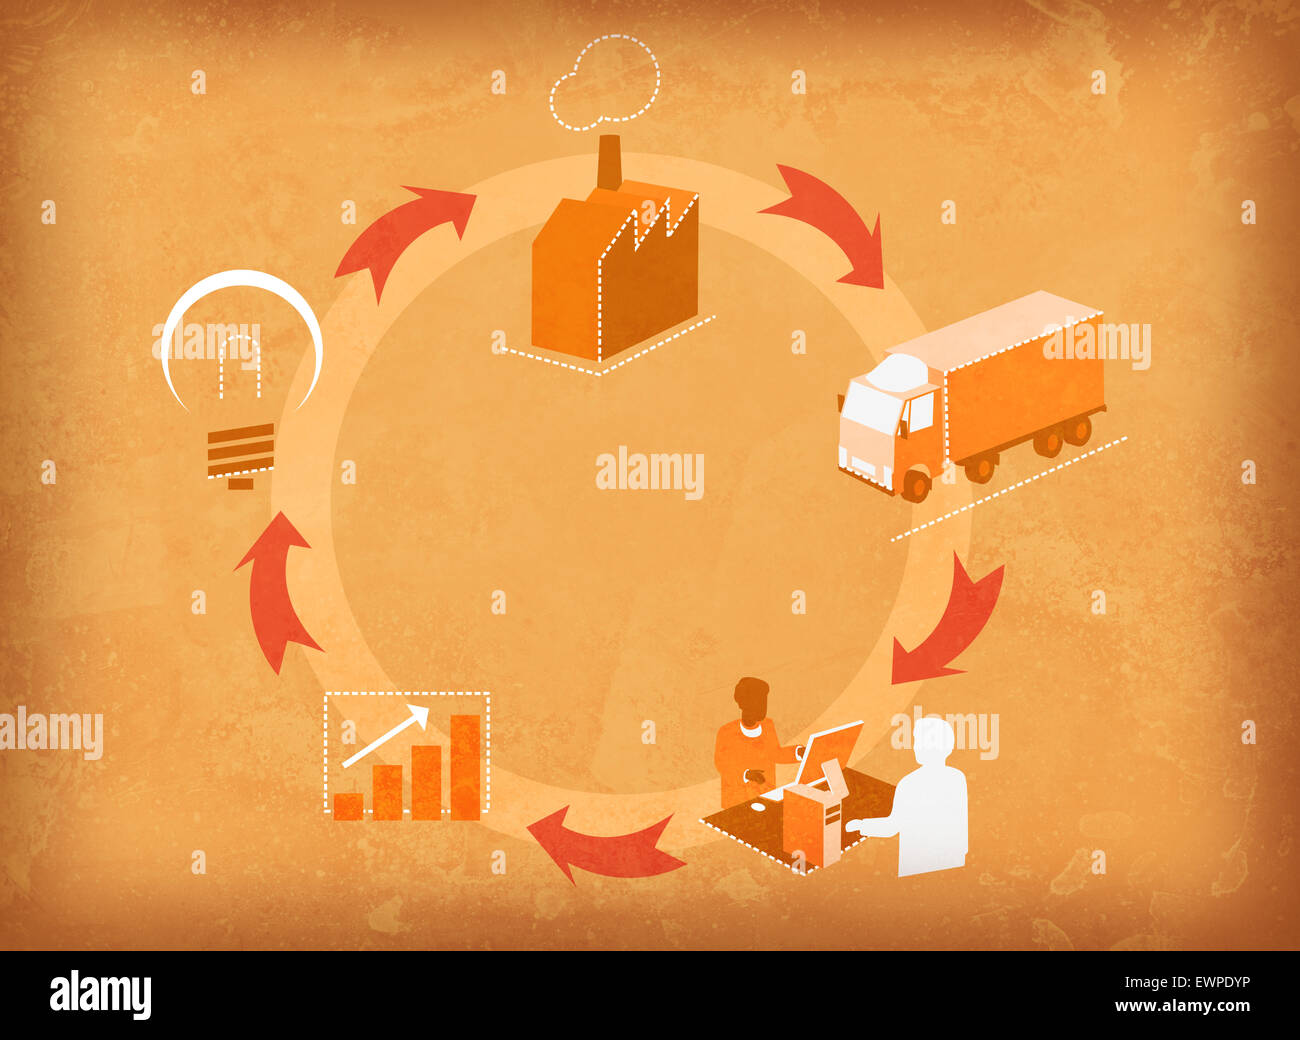 Business process cycle - Stock Image